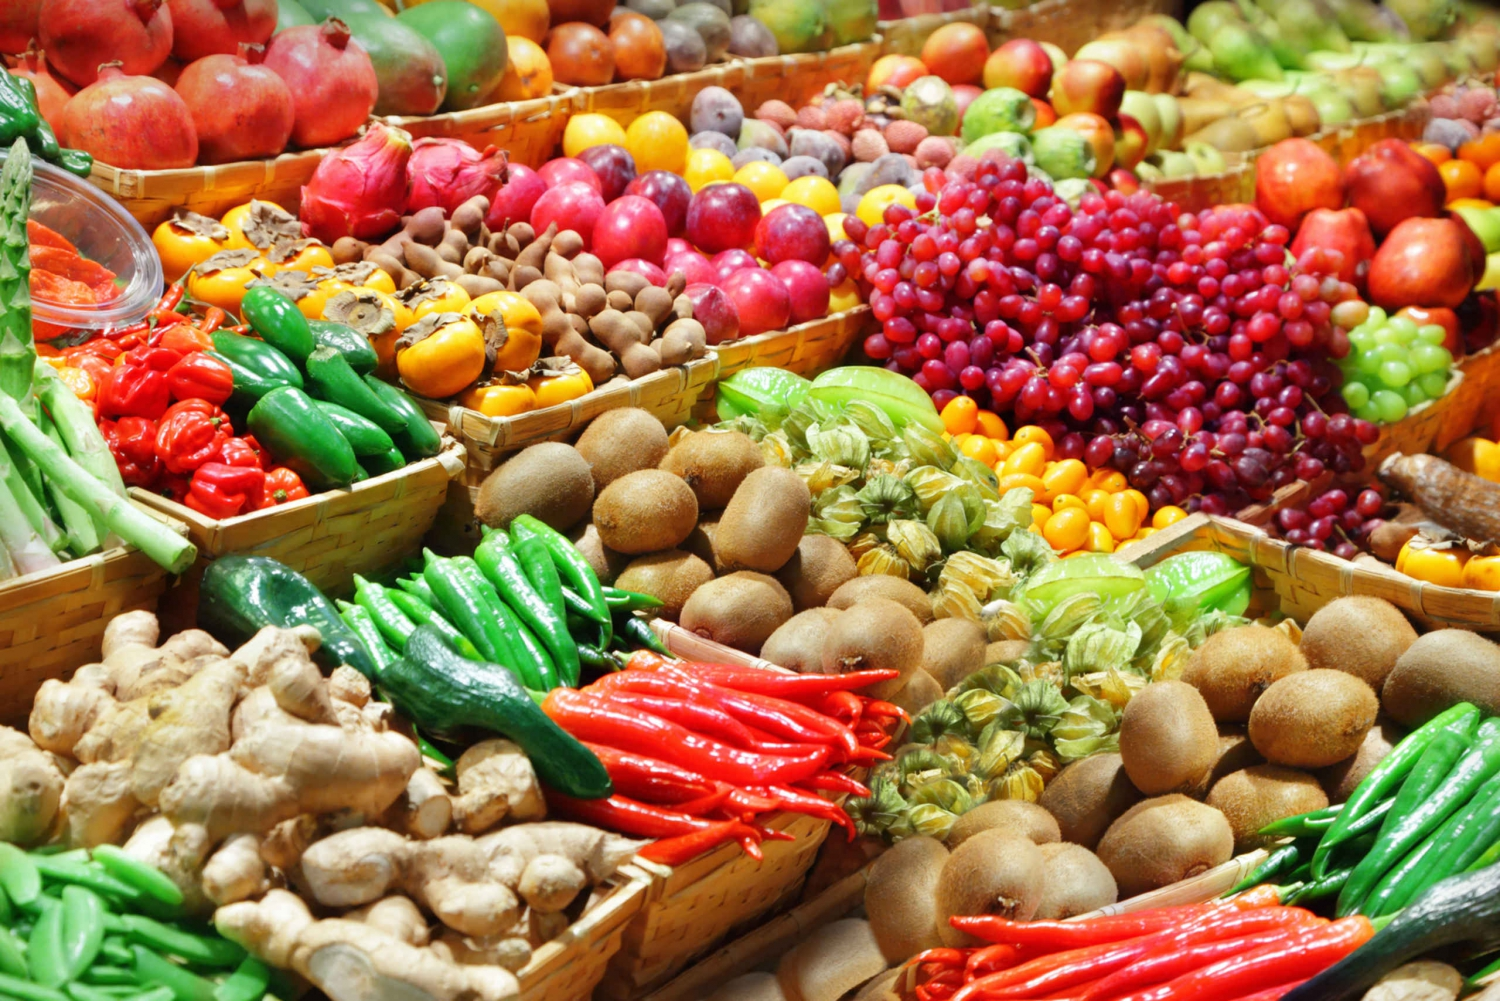 Tuscan Cooking Course with Florence Central Market Visit